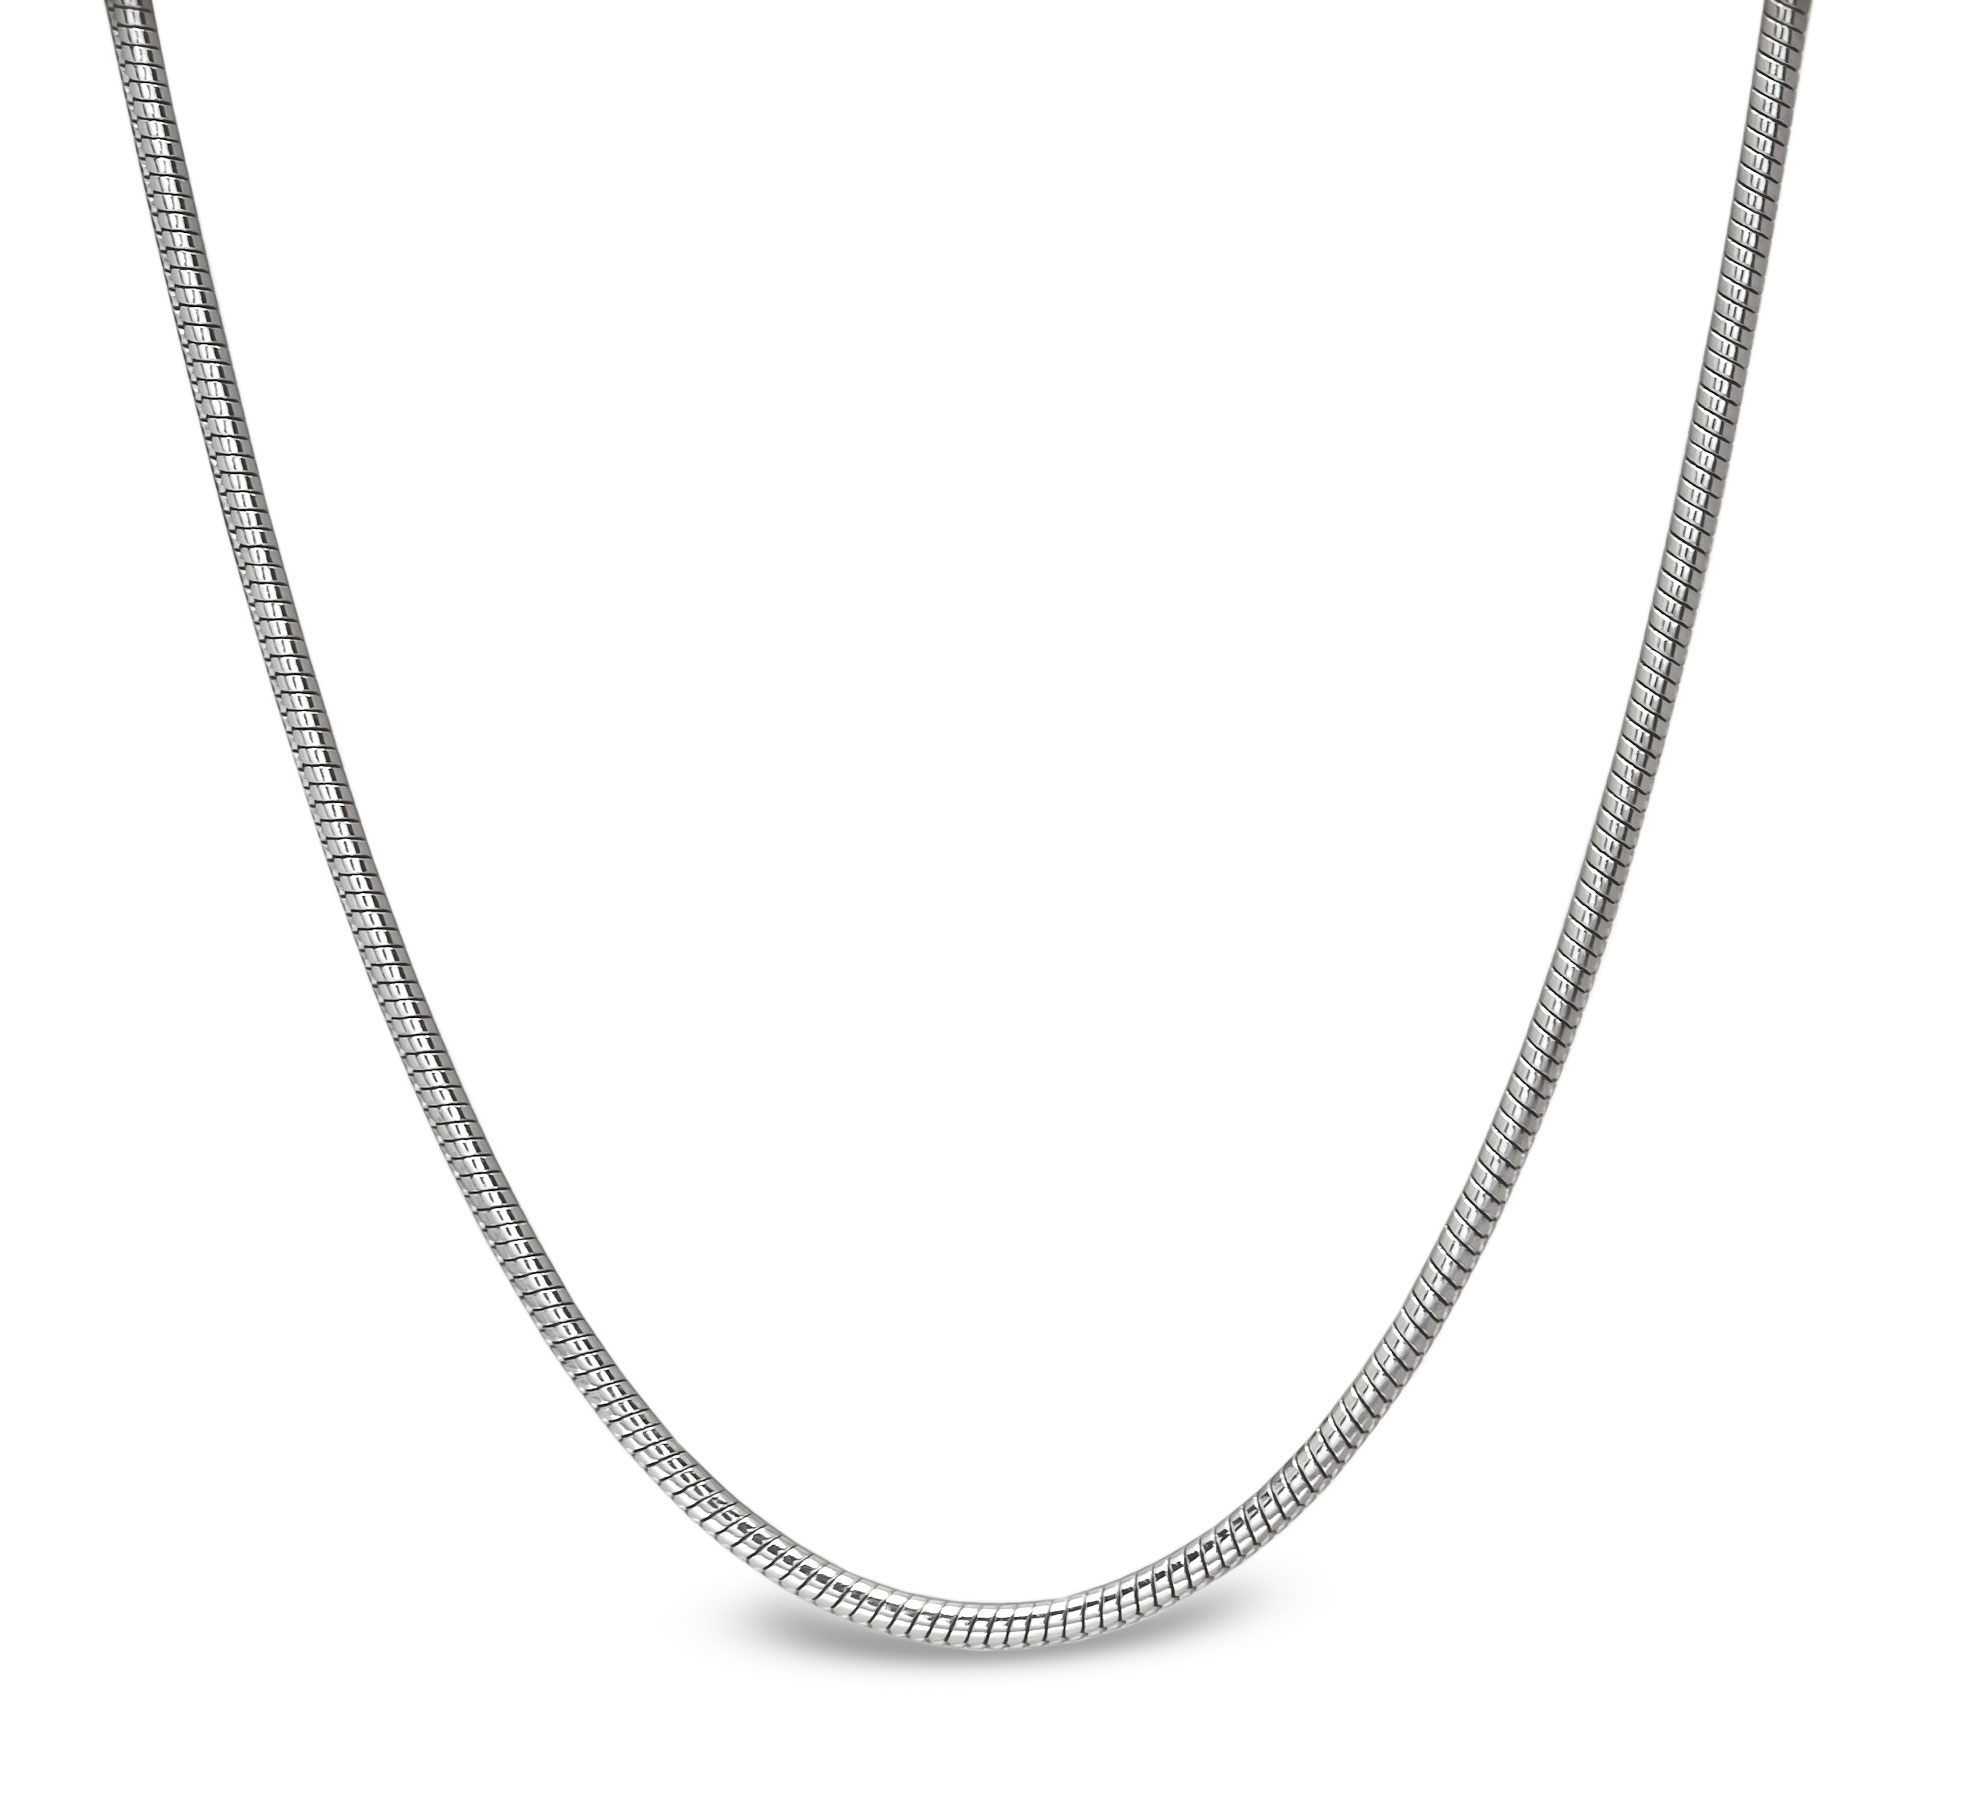 Classic Round Snake 14k White Gold Necklace - 20 in.